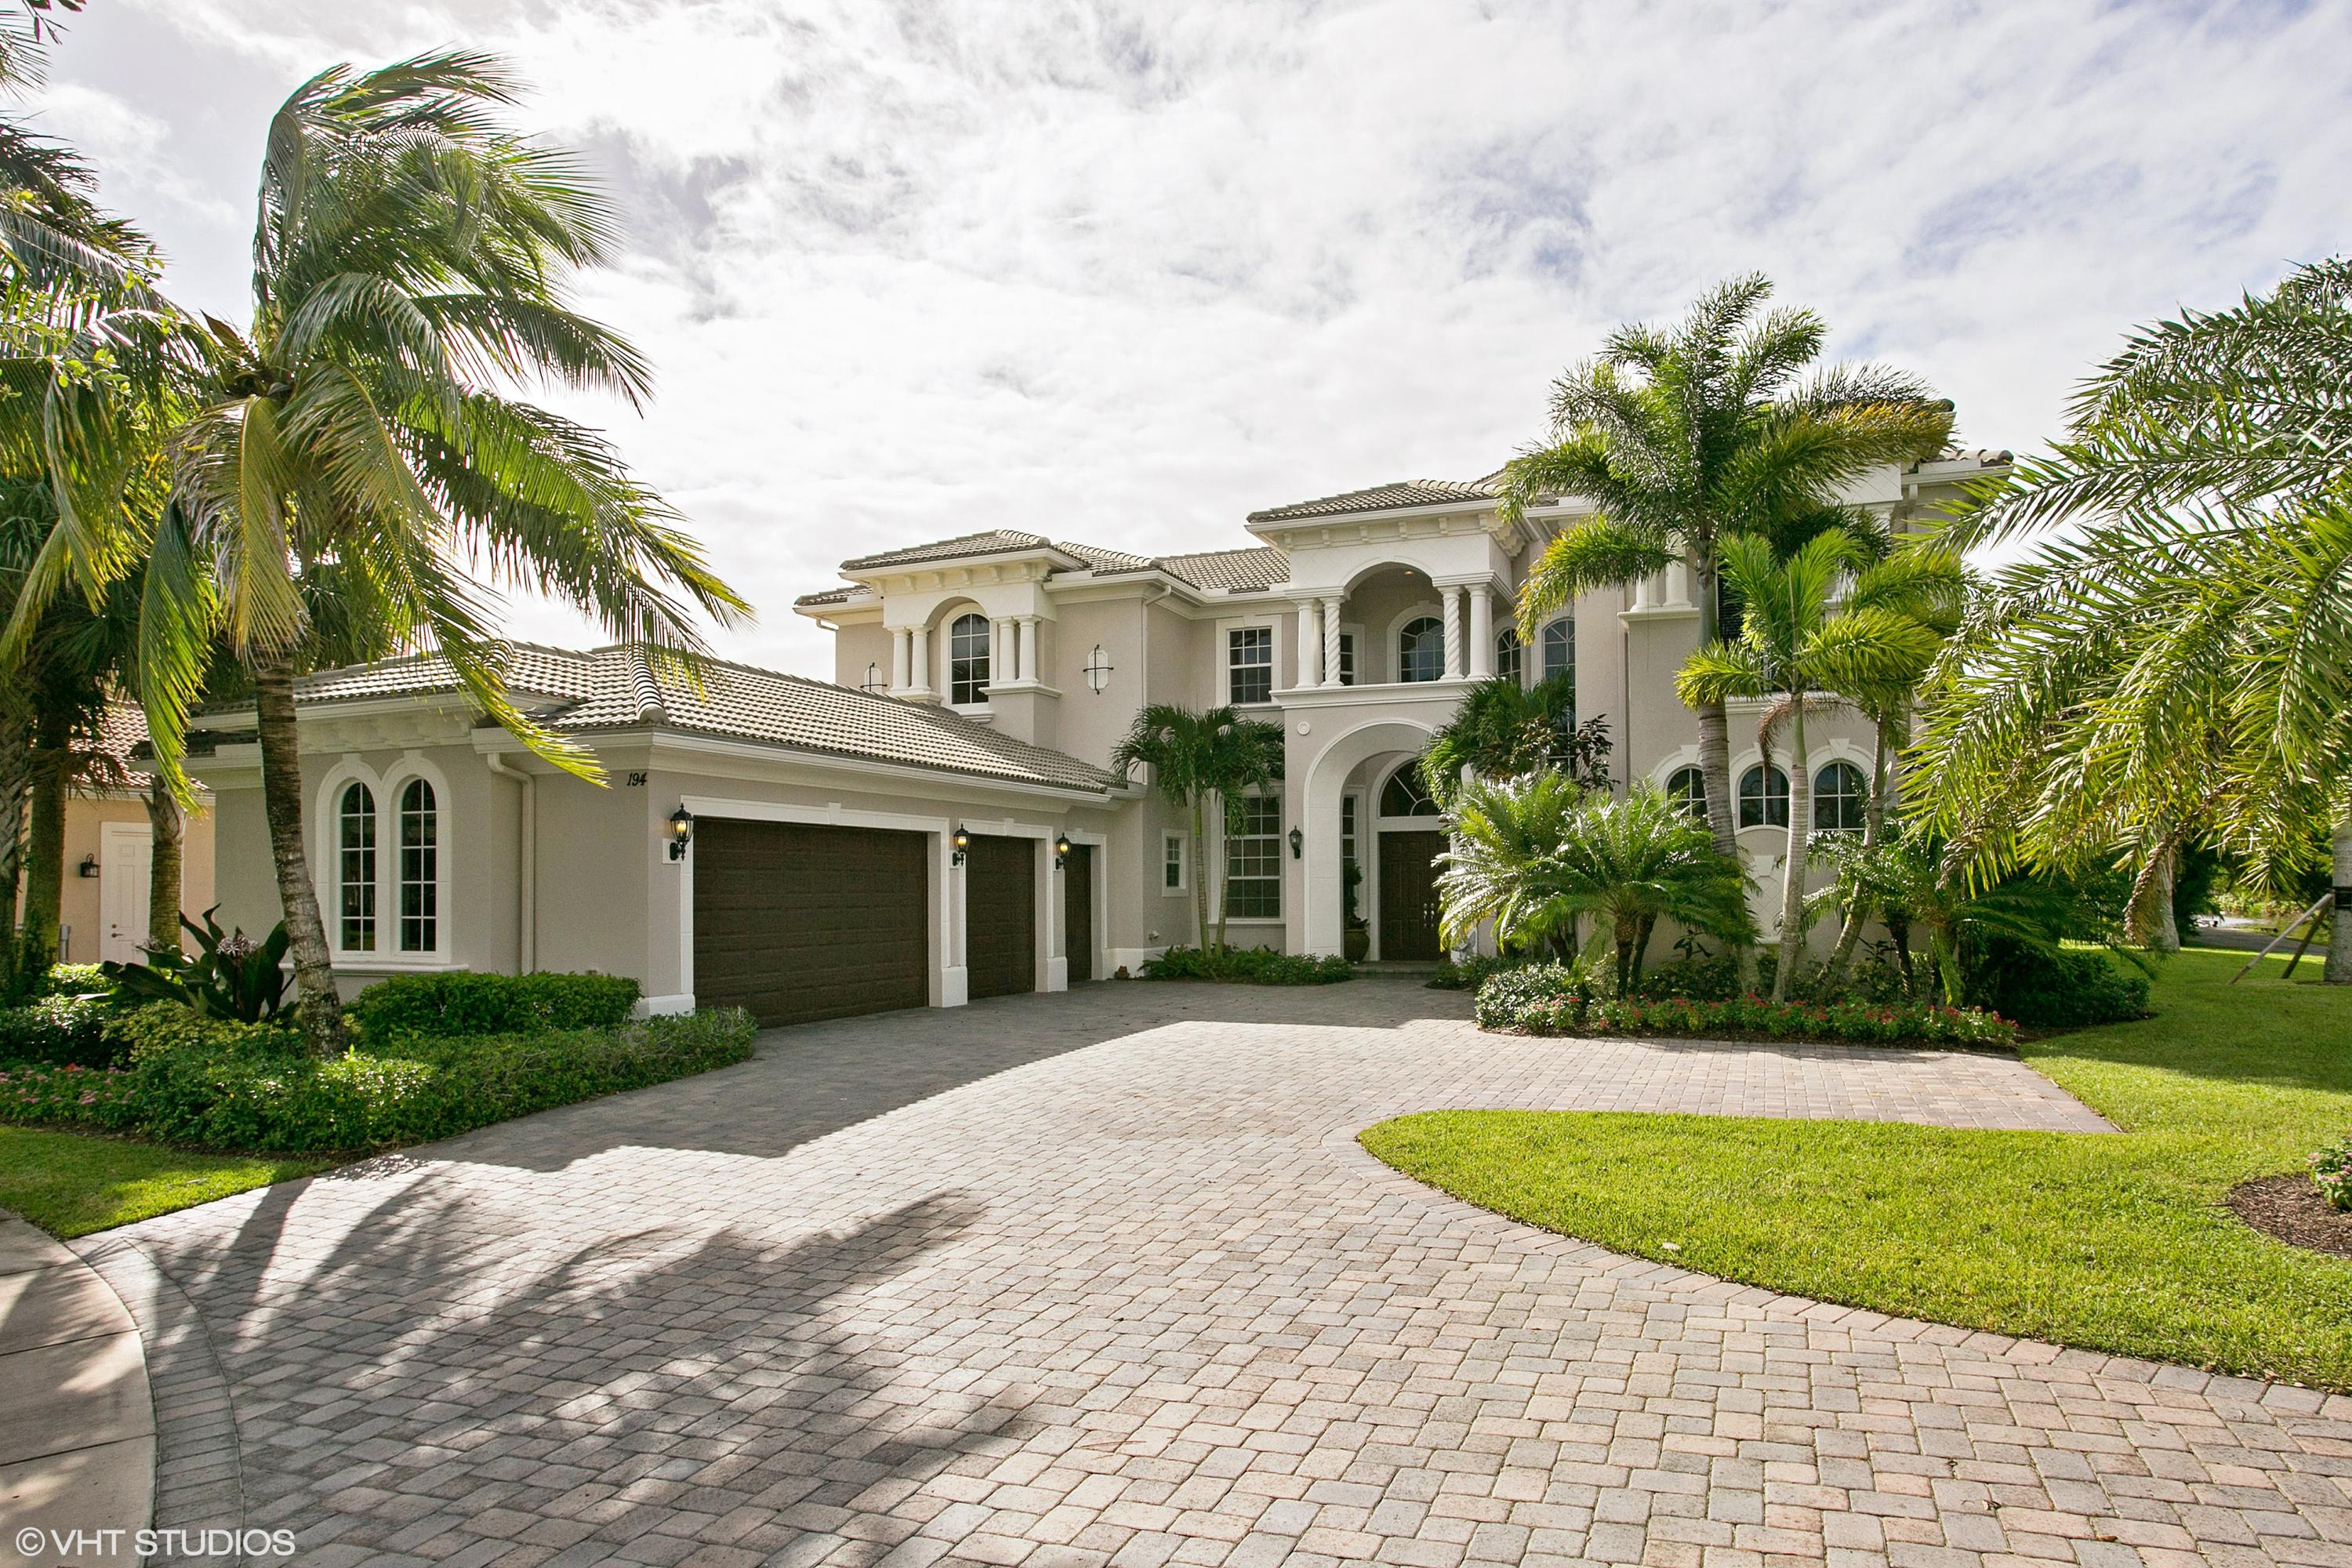 New Home for sale at 194 Elena Court in Jupiter